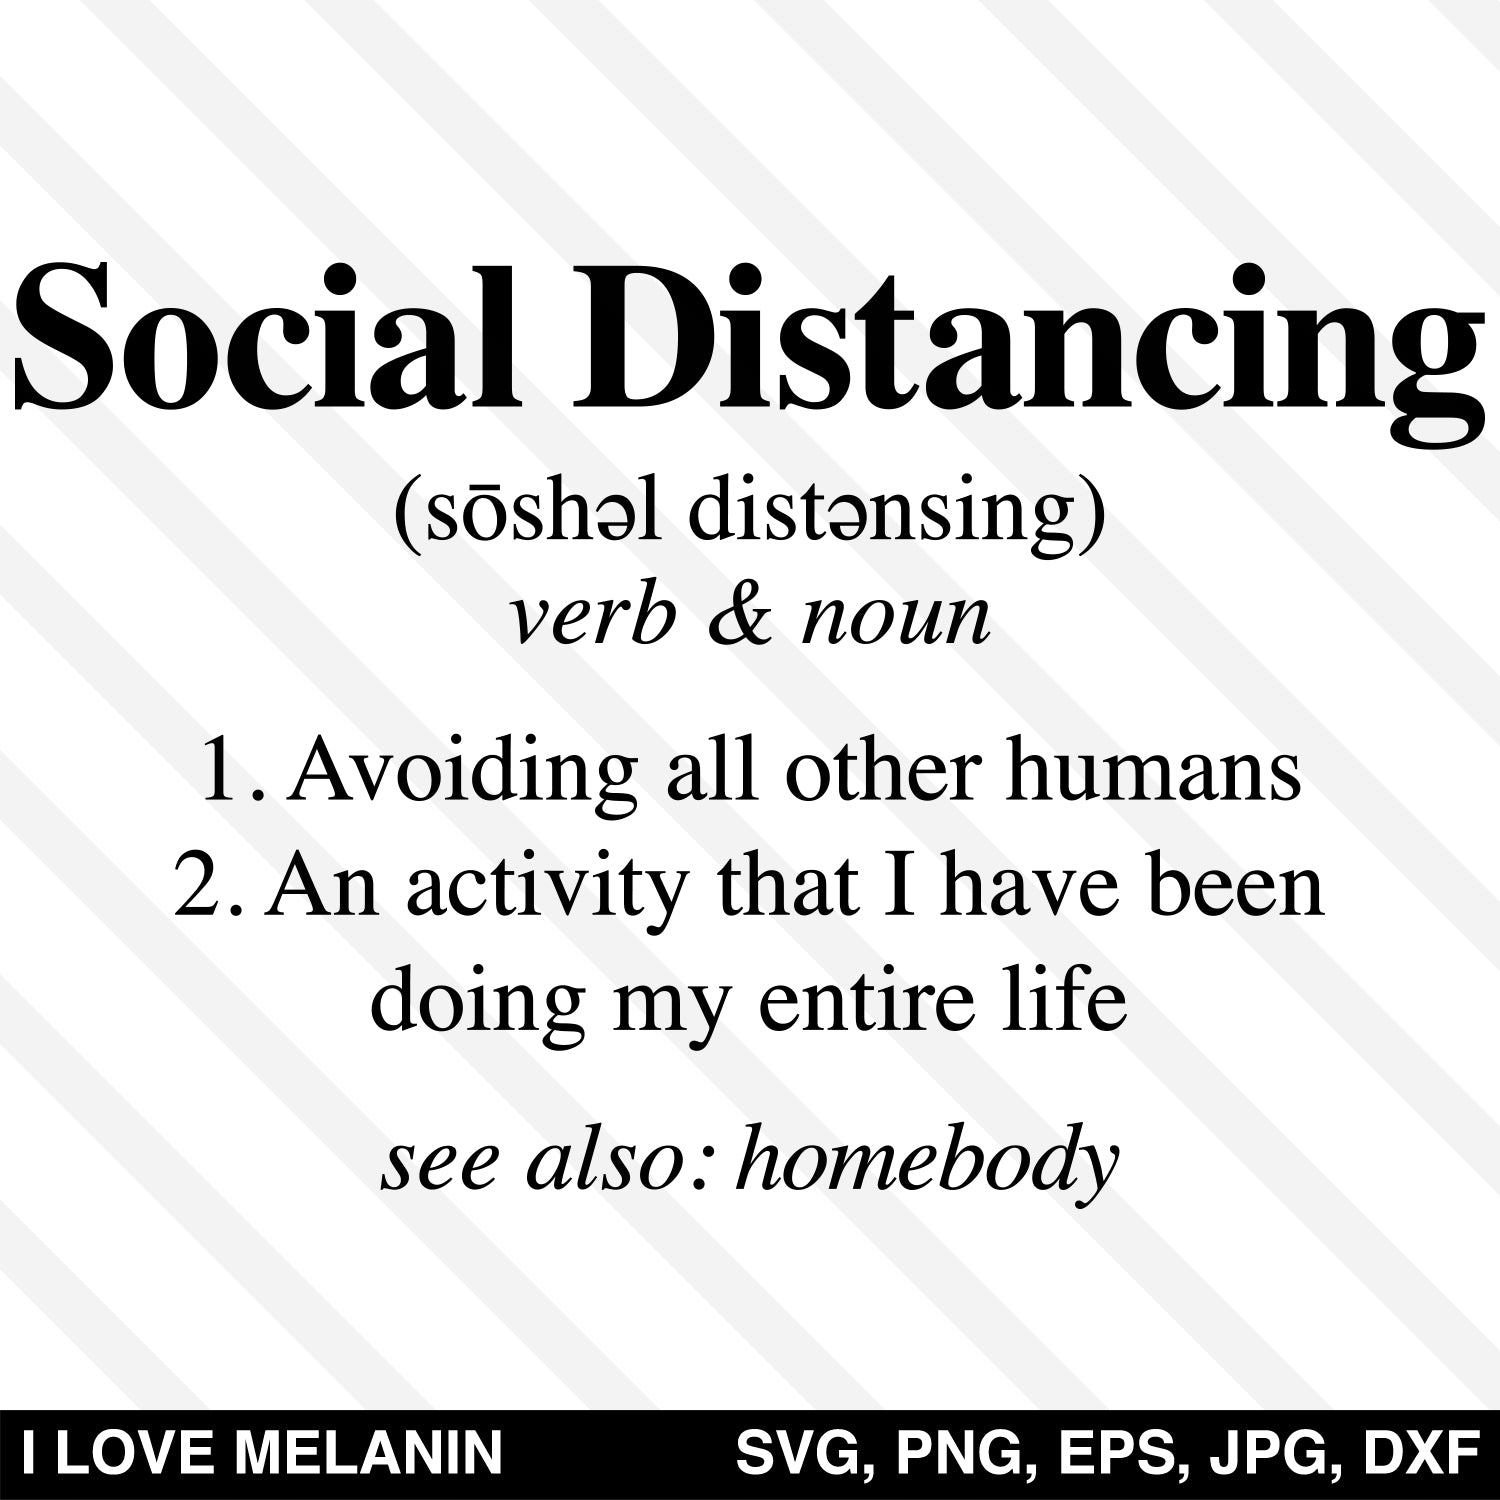 Social Distancing Definition SVG